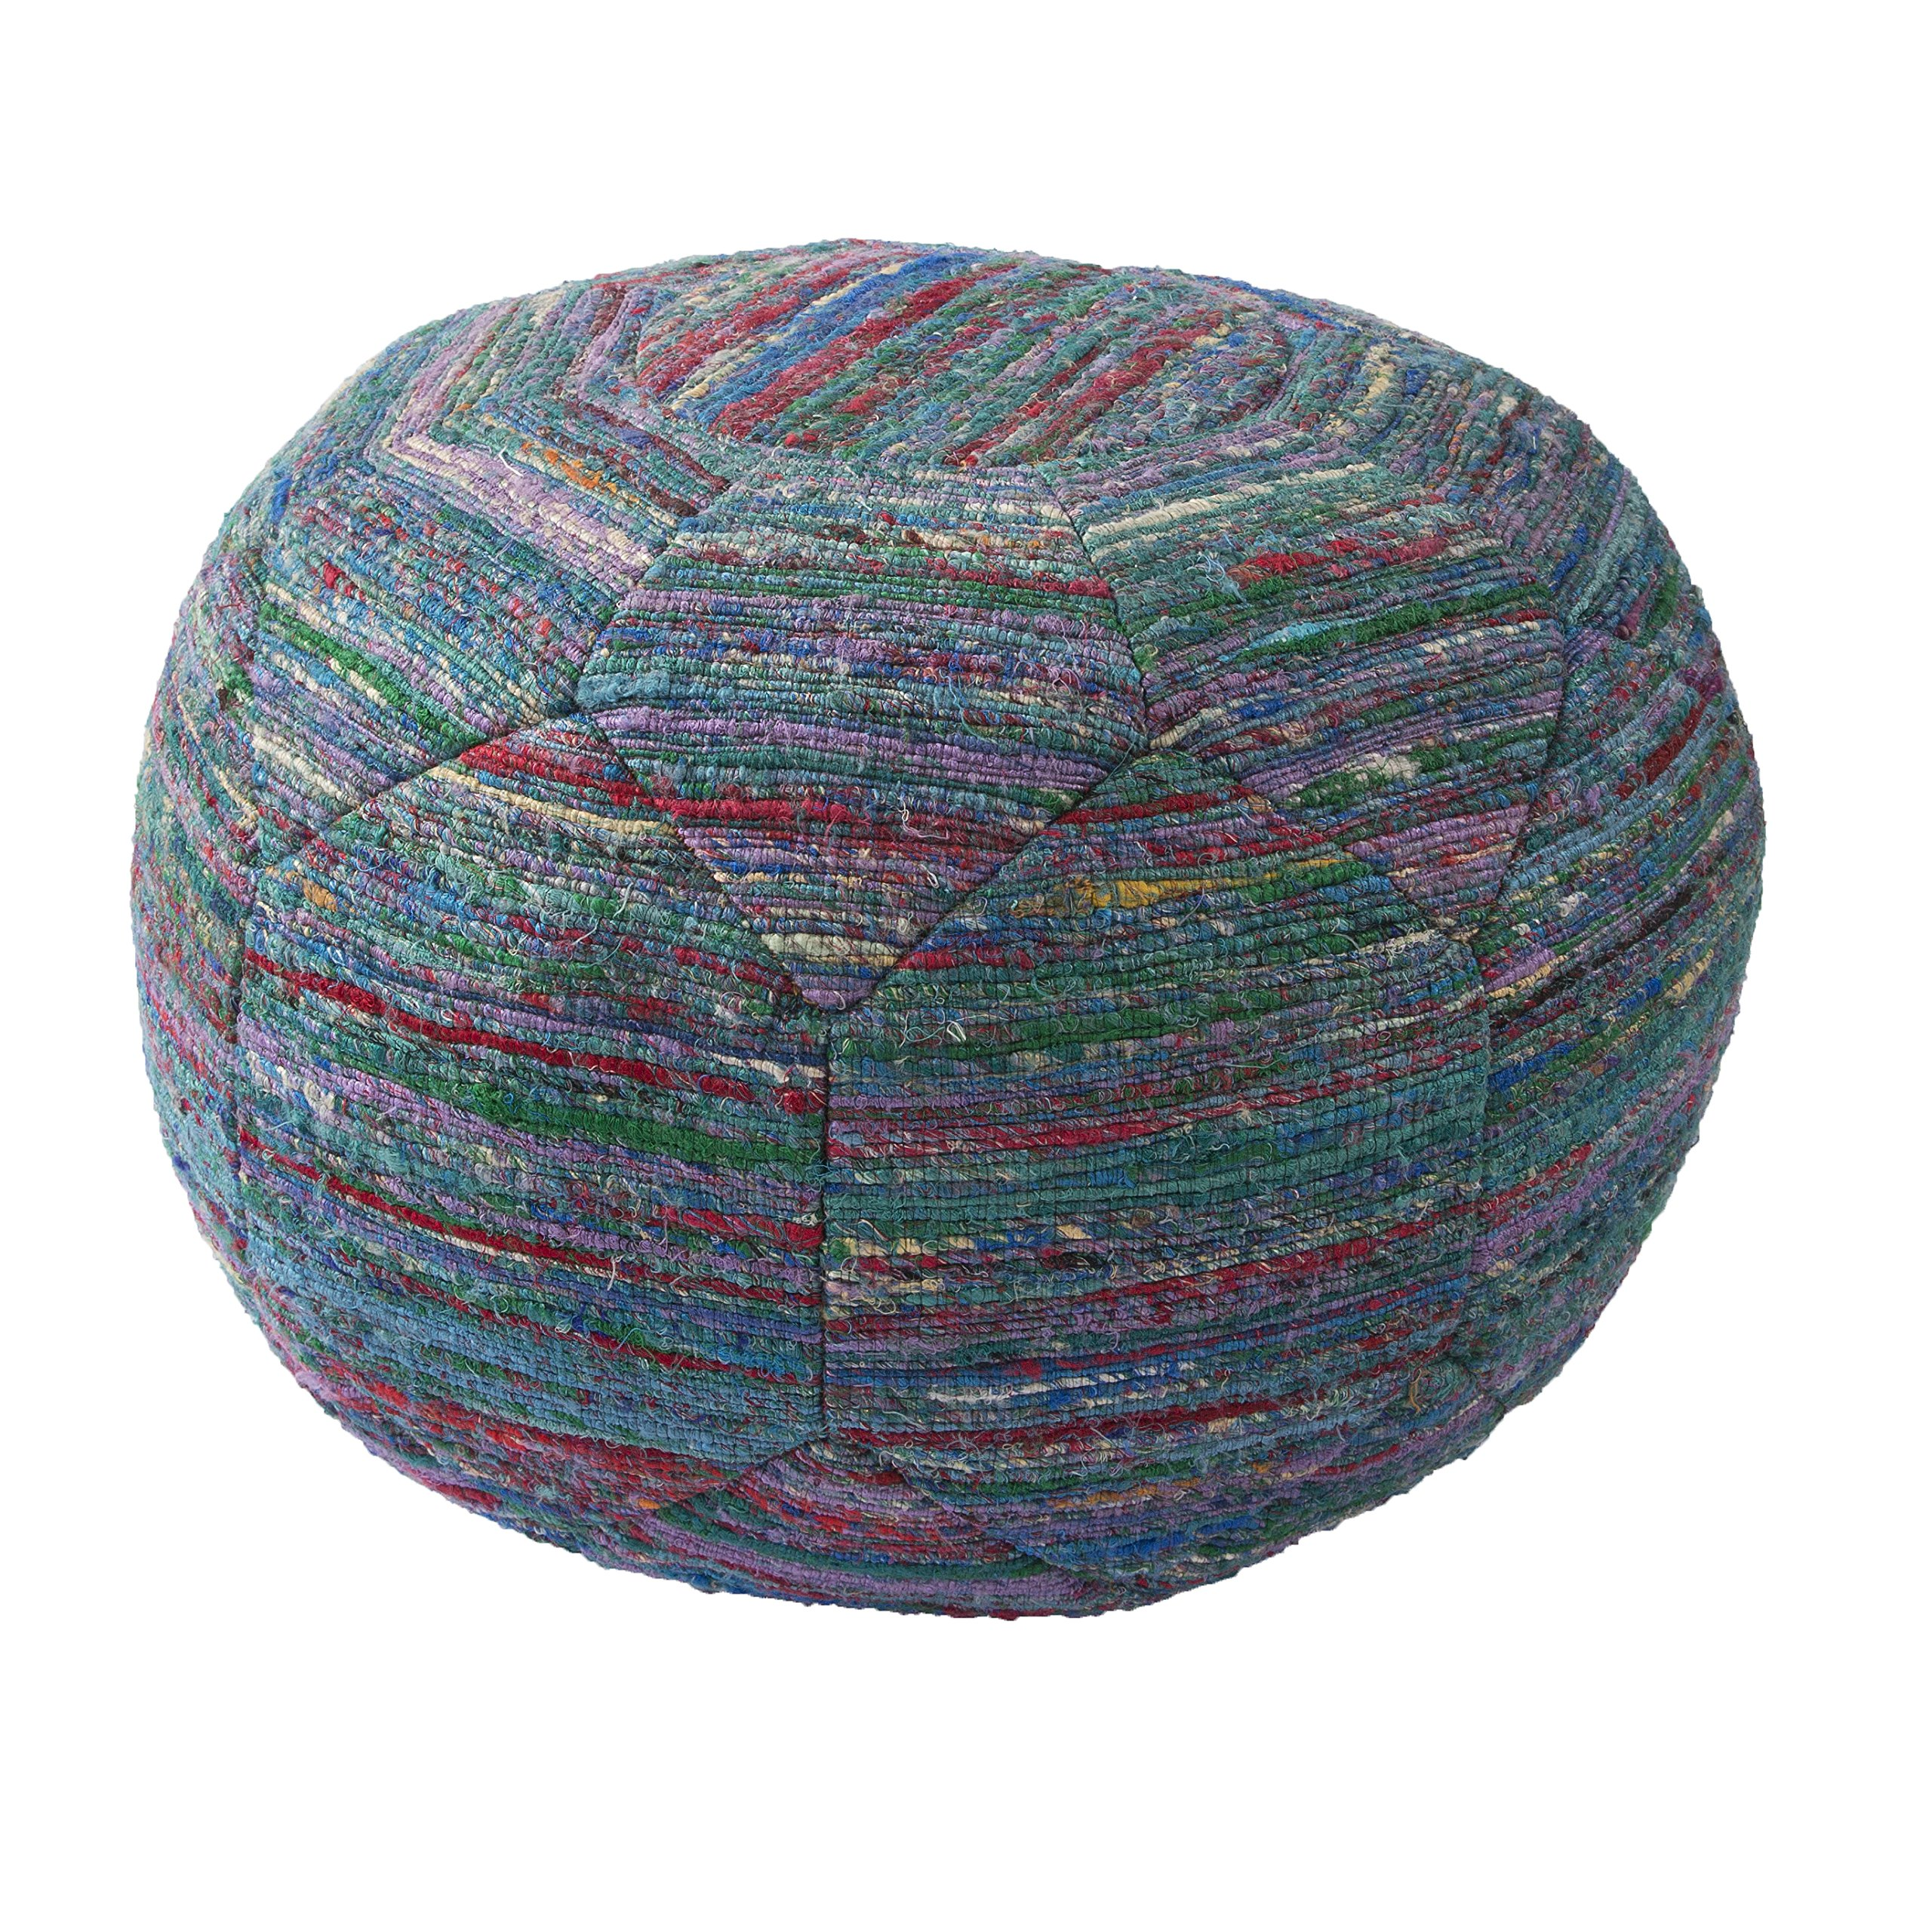 Jaipur Solid Pattern Blue Rayon and Polyester Pouf, 20-Inch x 20-Inch x 14-Inch, Deep Lake Np-2